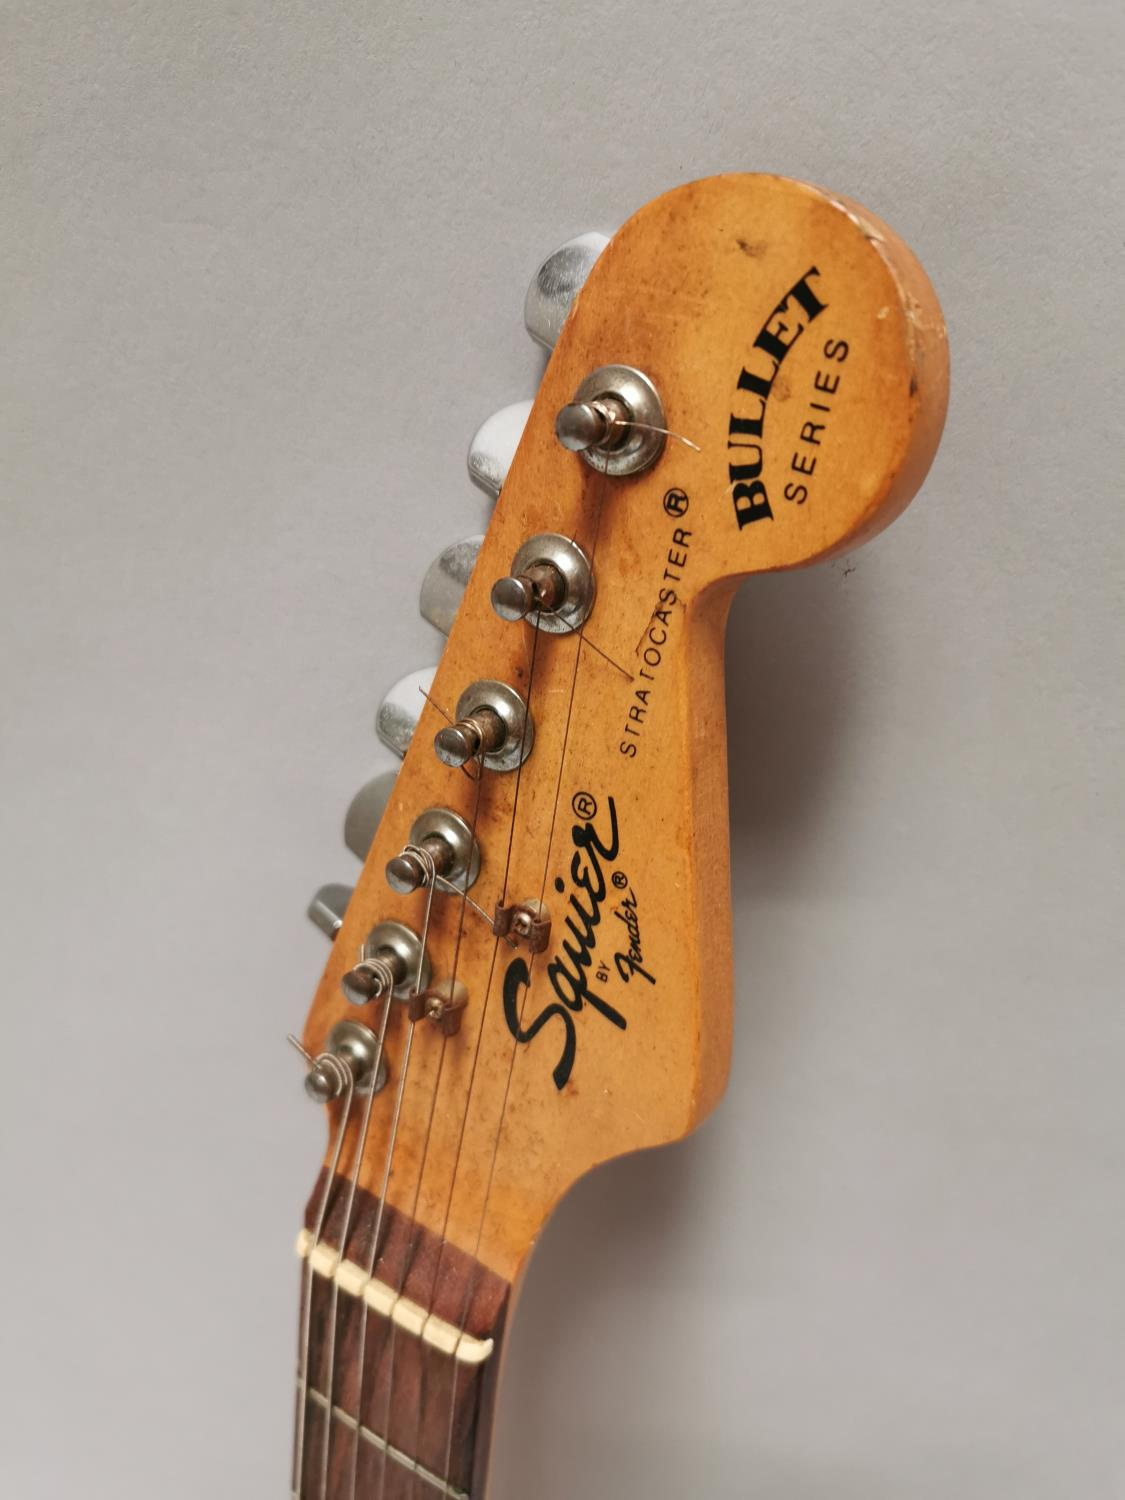 Squire Fender electric guitar - Image 3 of 5